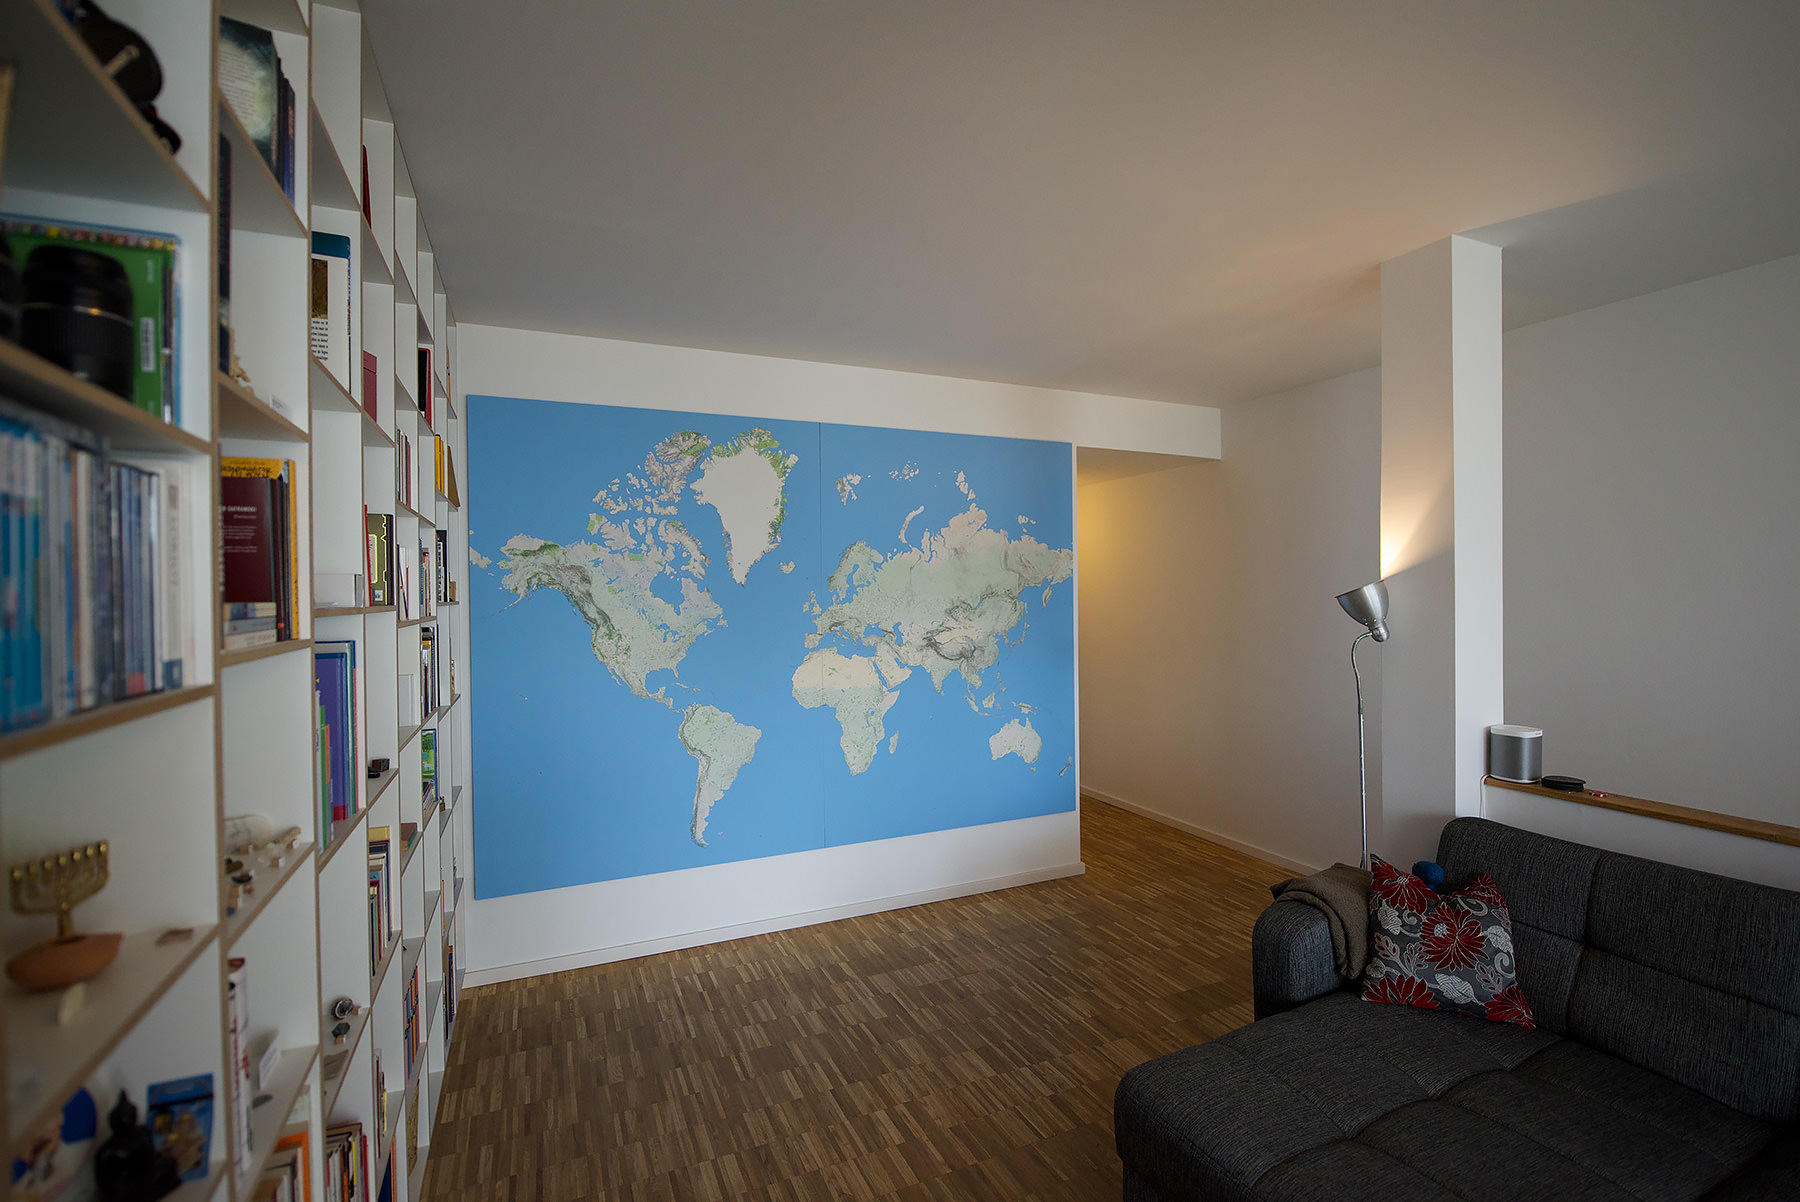 3x2 meters: my huge world map project is (almost?) finished.